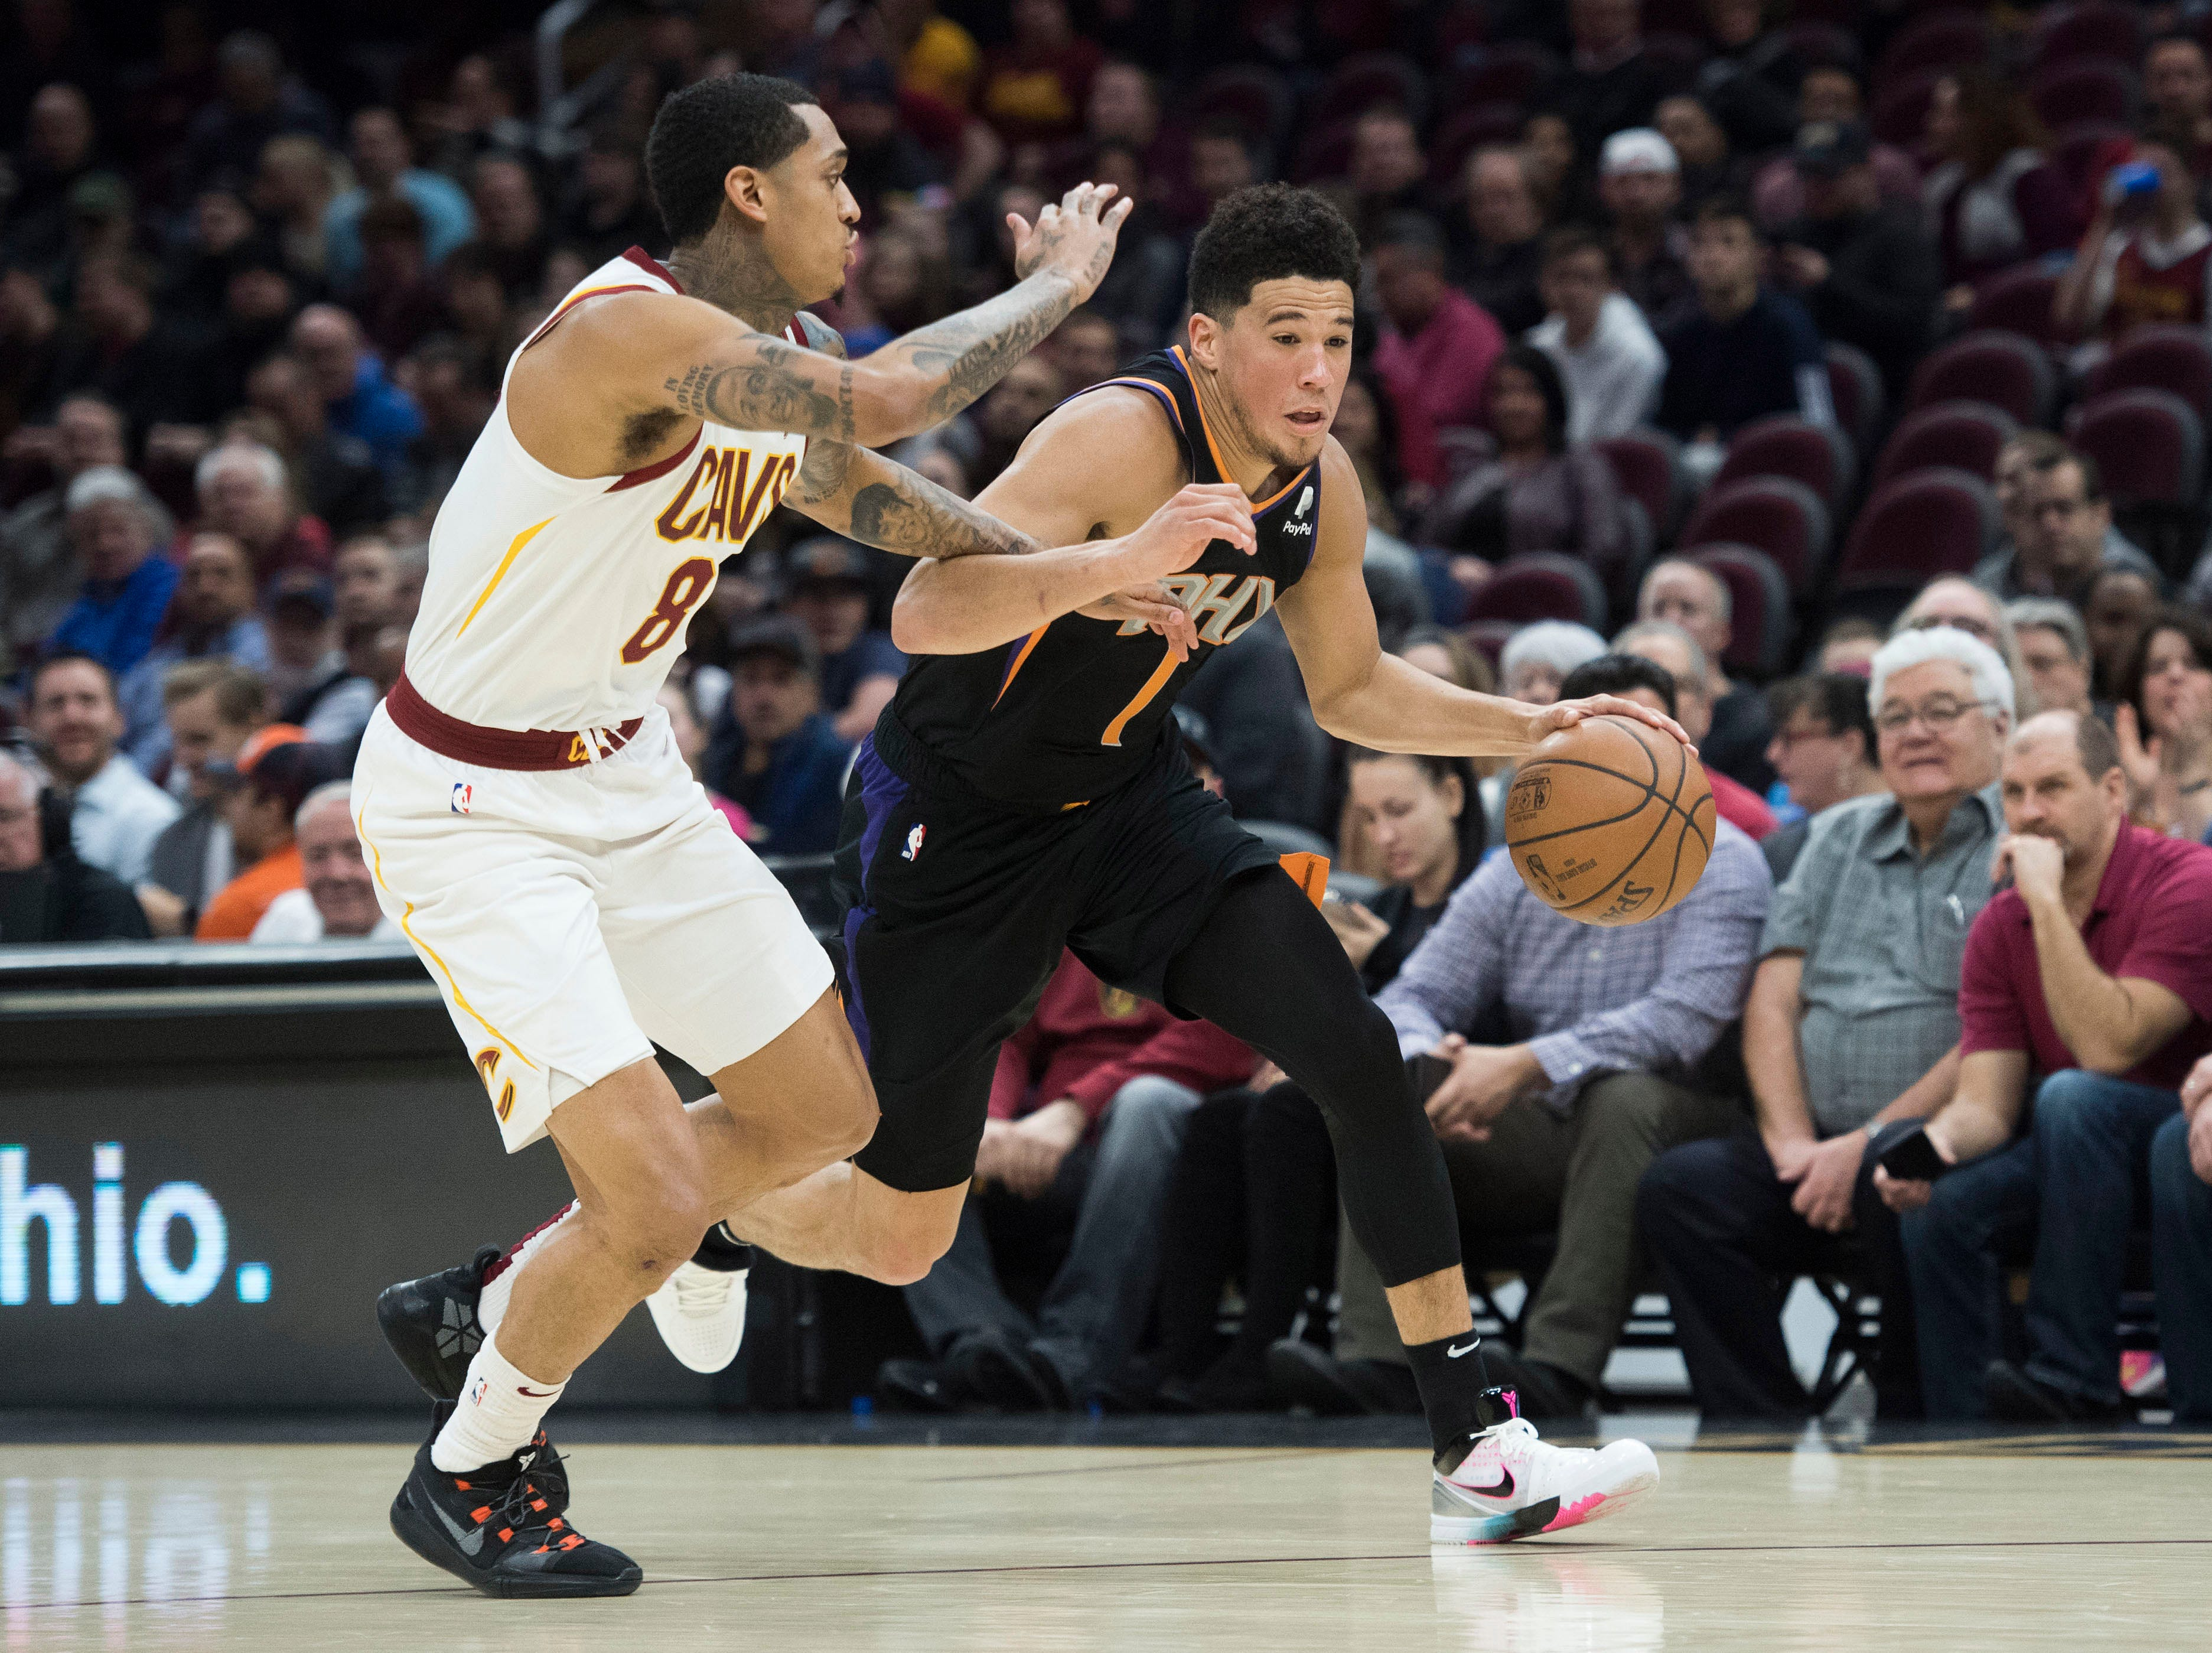 Feb 21, 2019; Cleveland, OH, USA; Phoenix Suns guard Devin Booker (1) drives to the basket against Cleveland Cavaliers guard Jordan Clarkson (8) during the first half at Quicken Loans Arena. Mandatory Credit: Ken Blaze-USA TODAY Sports